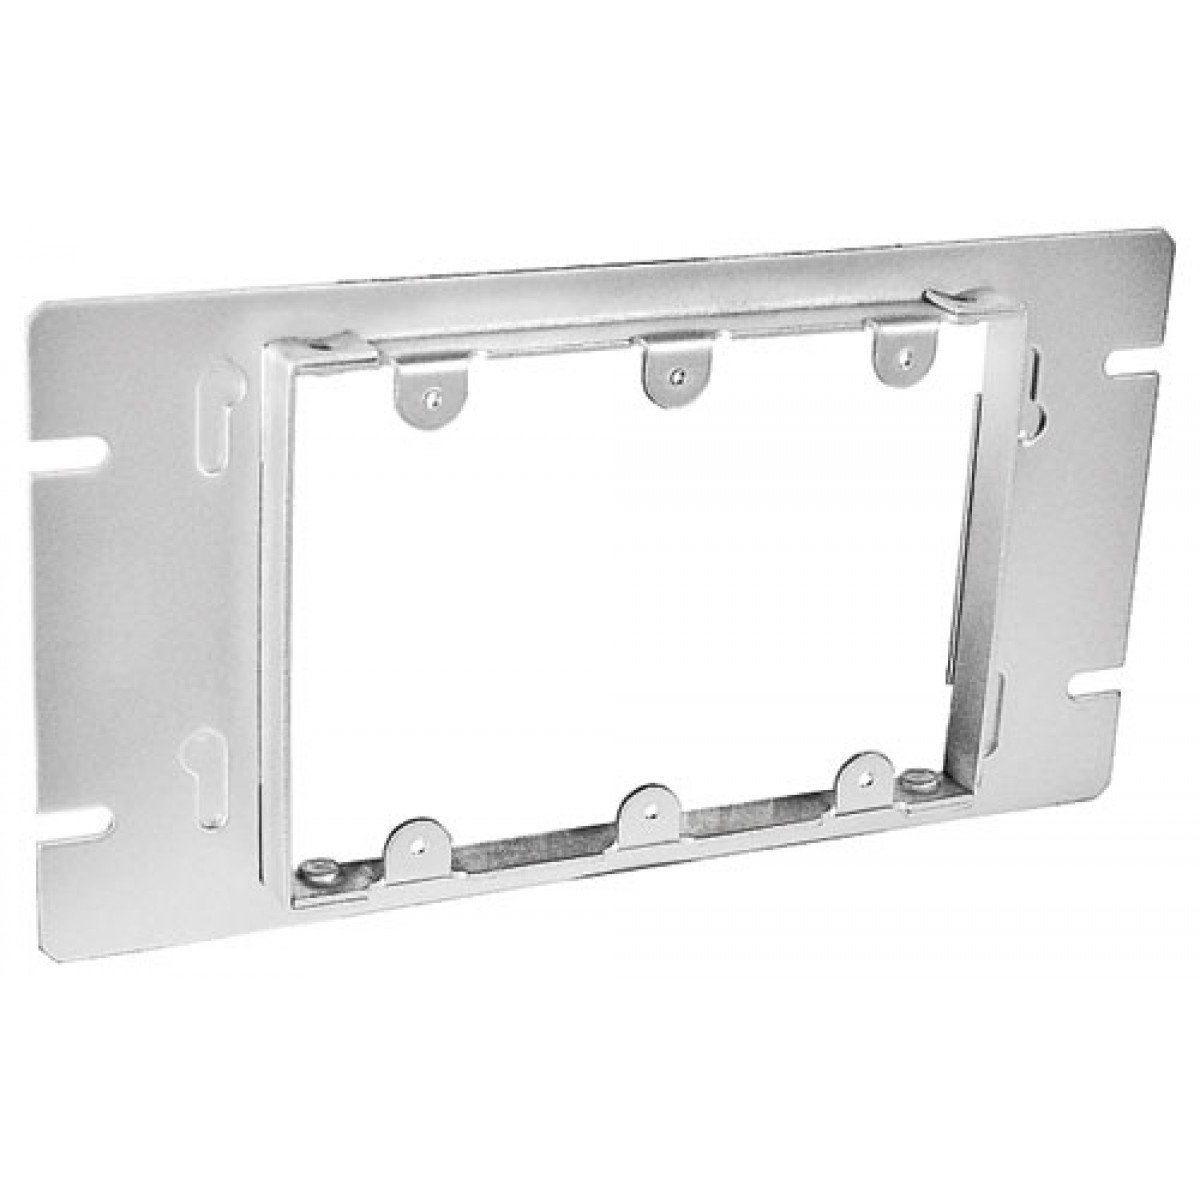 1 Pc, Zinc Plated Steel Three Gang Multi-Gang Box Cover, Cover, 1/2 In. Raised to Mount Multiple Devices